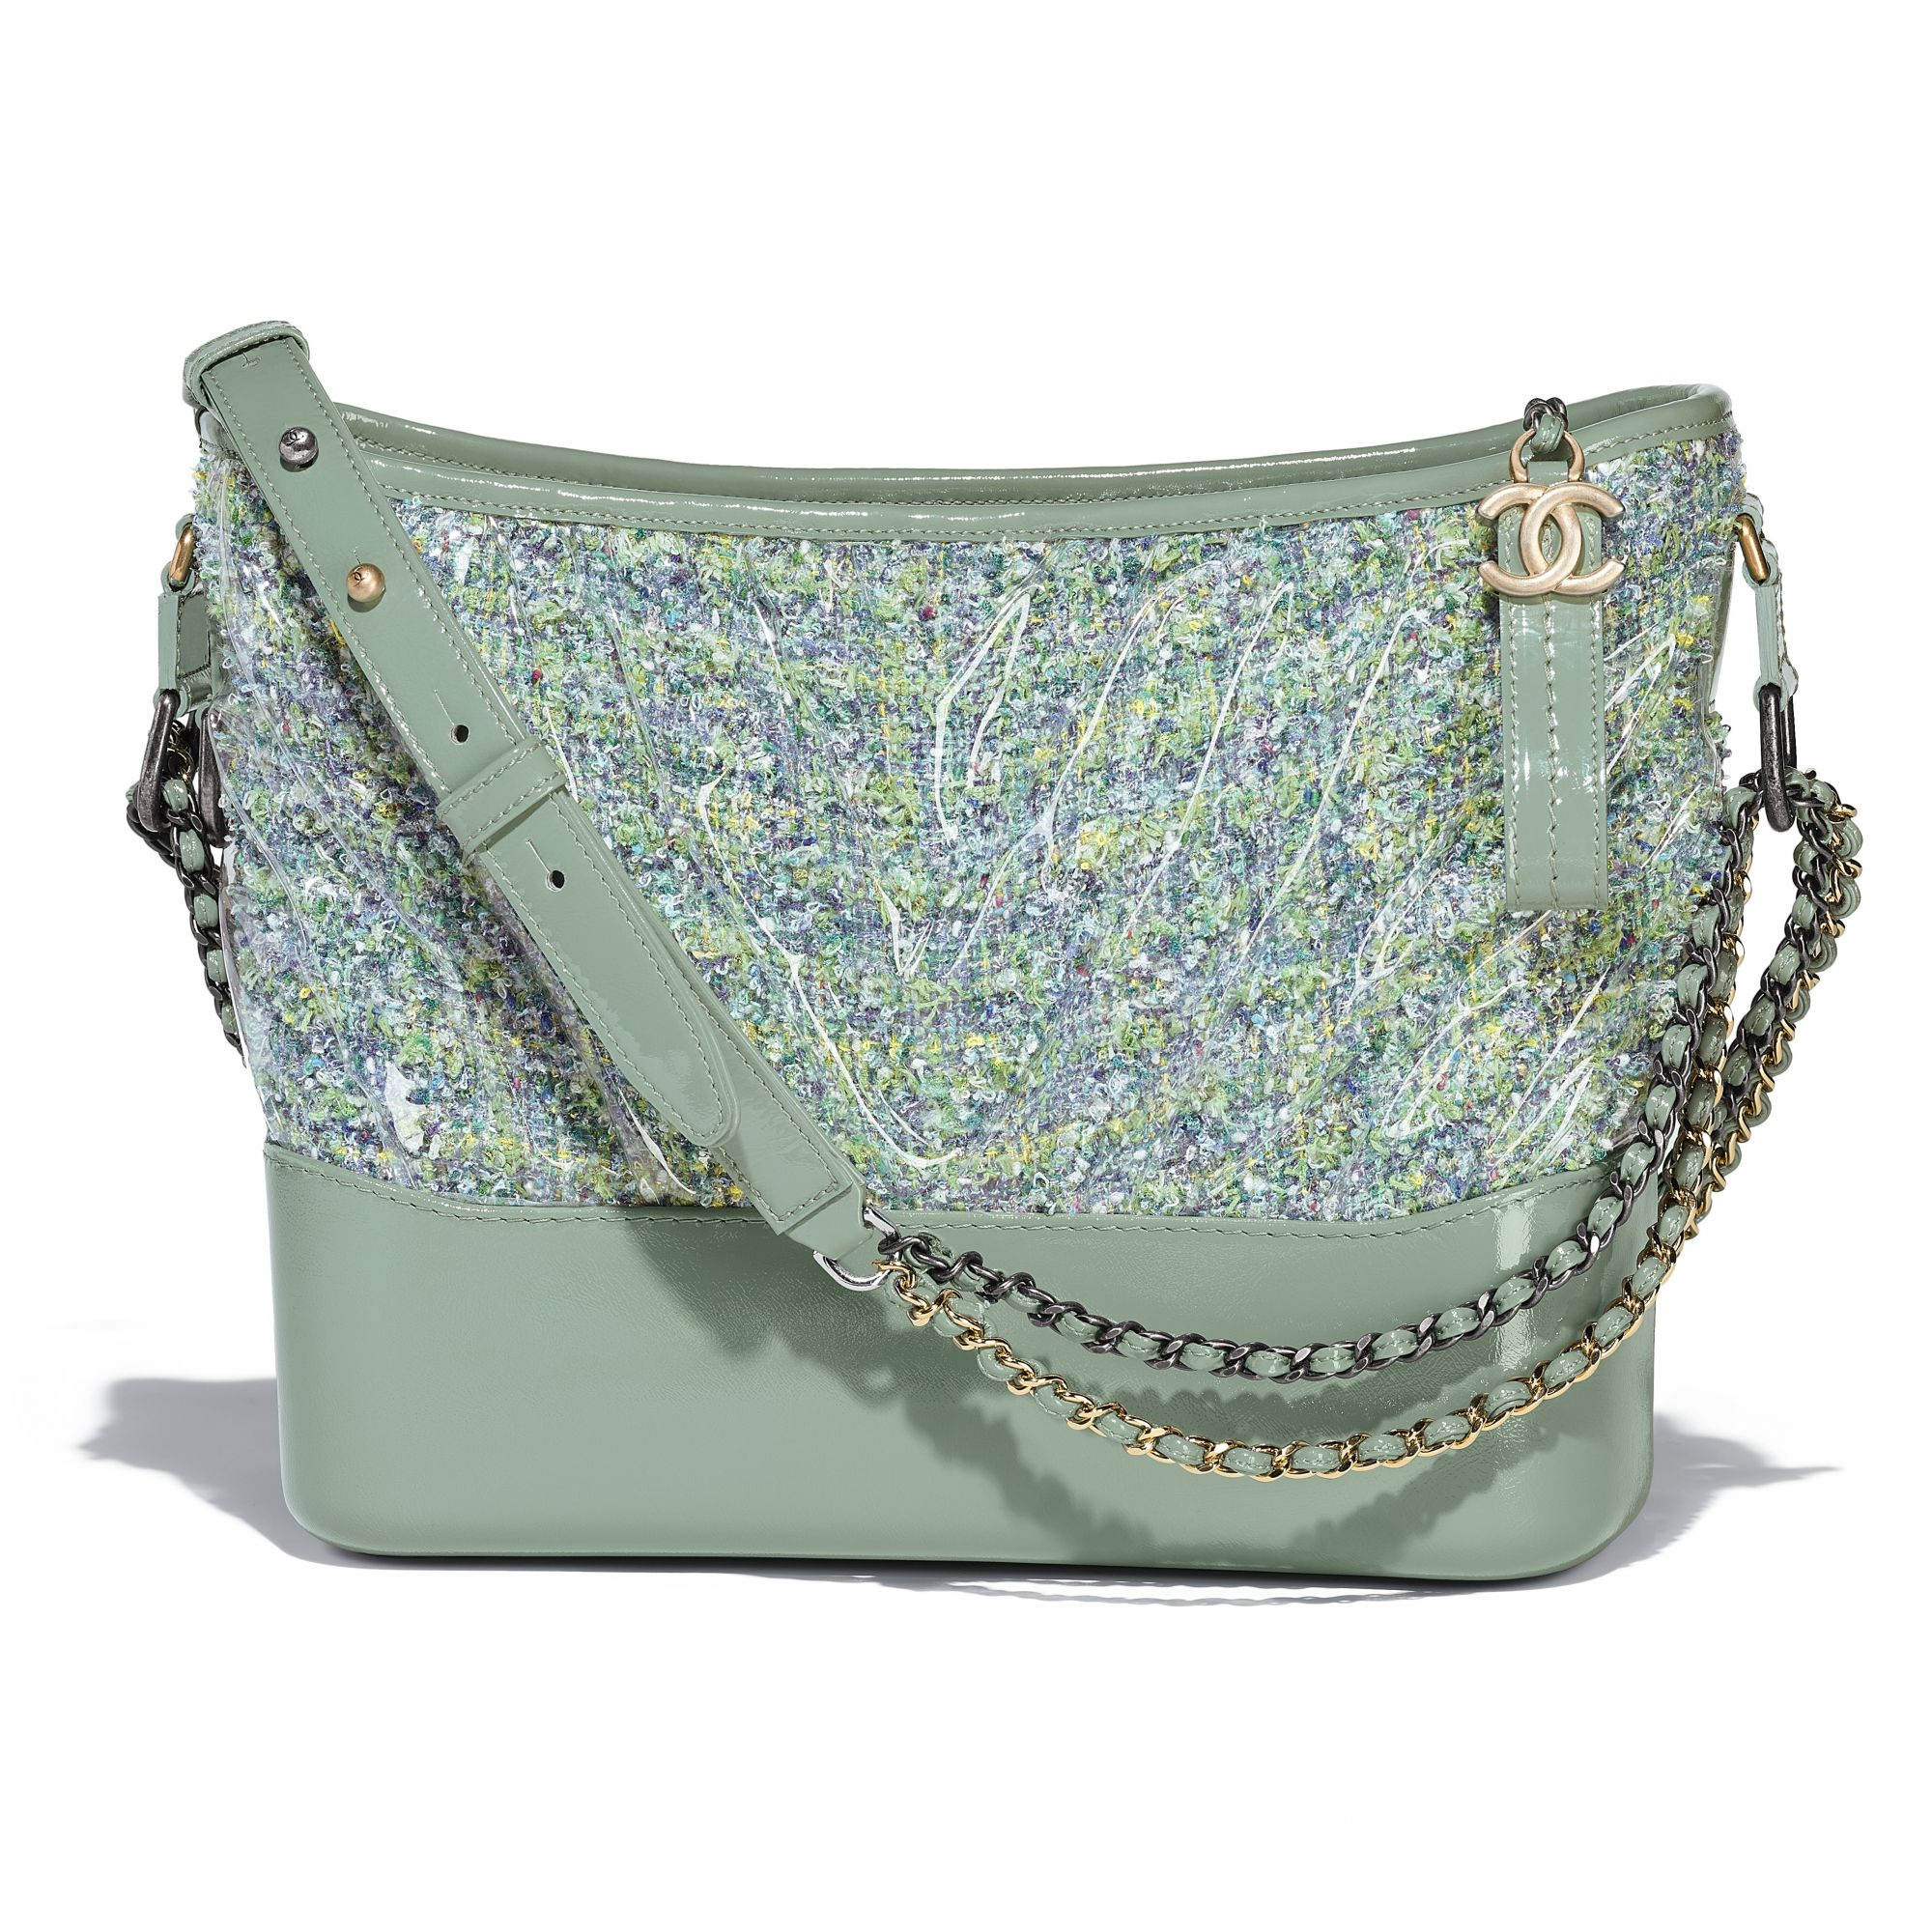 Green Chanel Gabrielle bag in tweed, PVC and leather